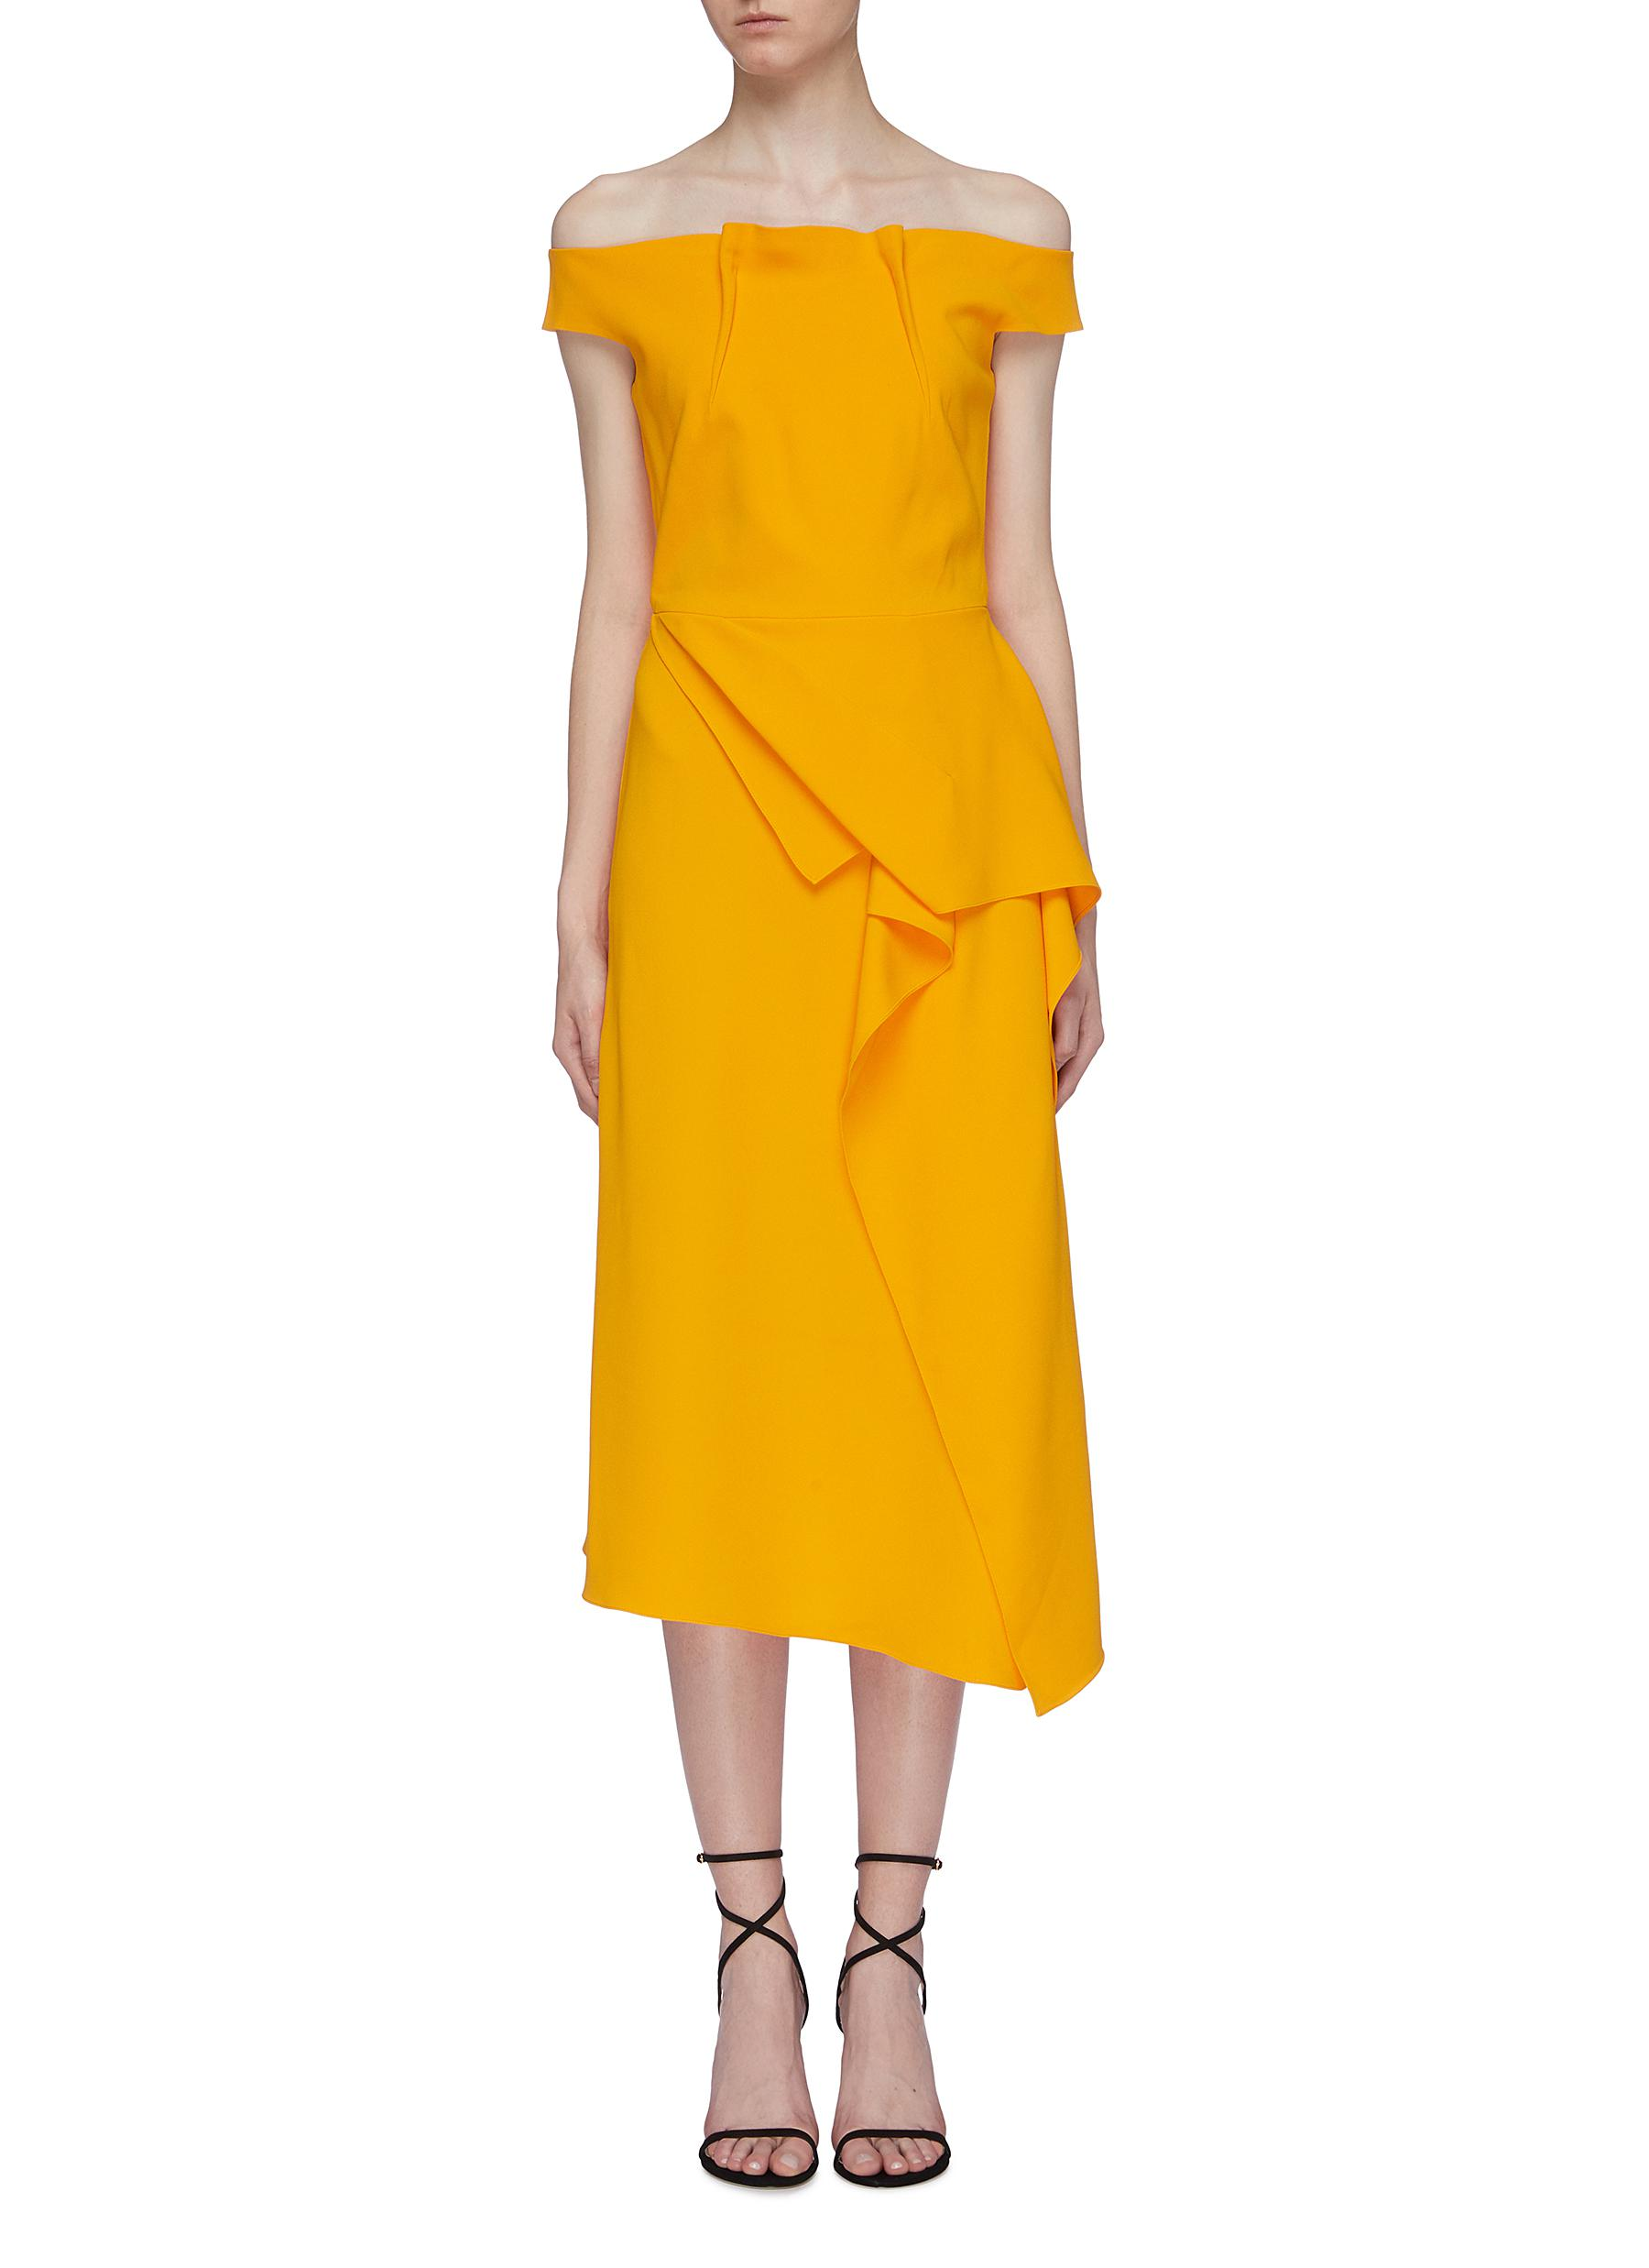 Arch asymmetric folded panel off-shoulder midi dress by Roland Mouret